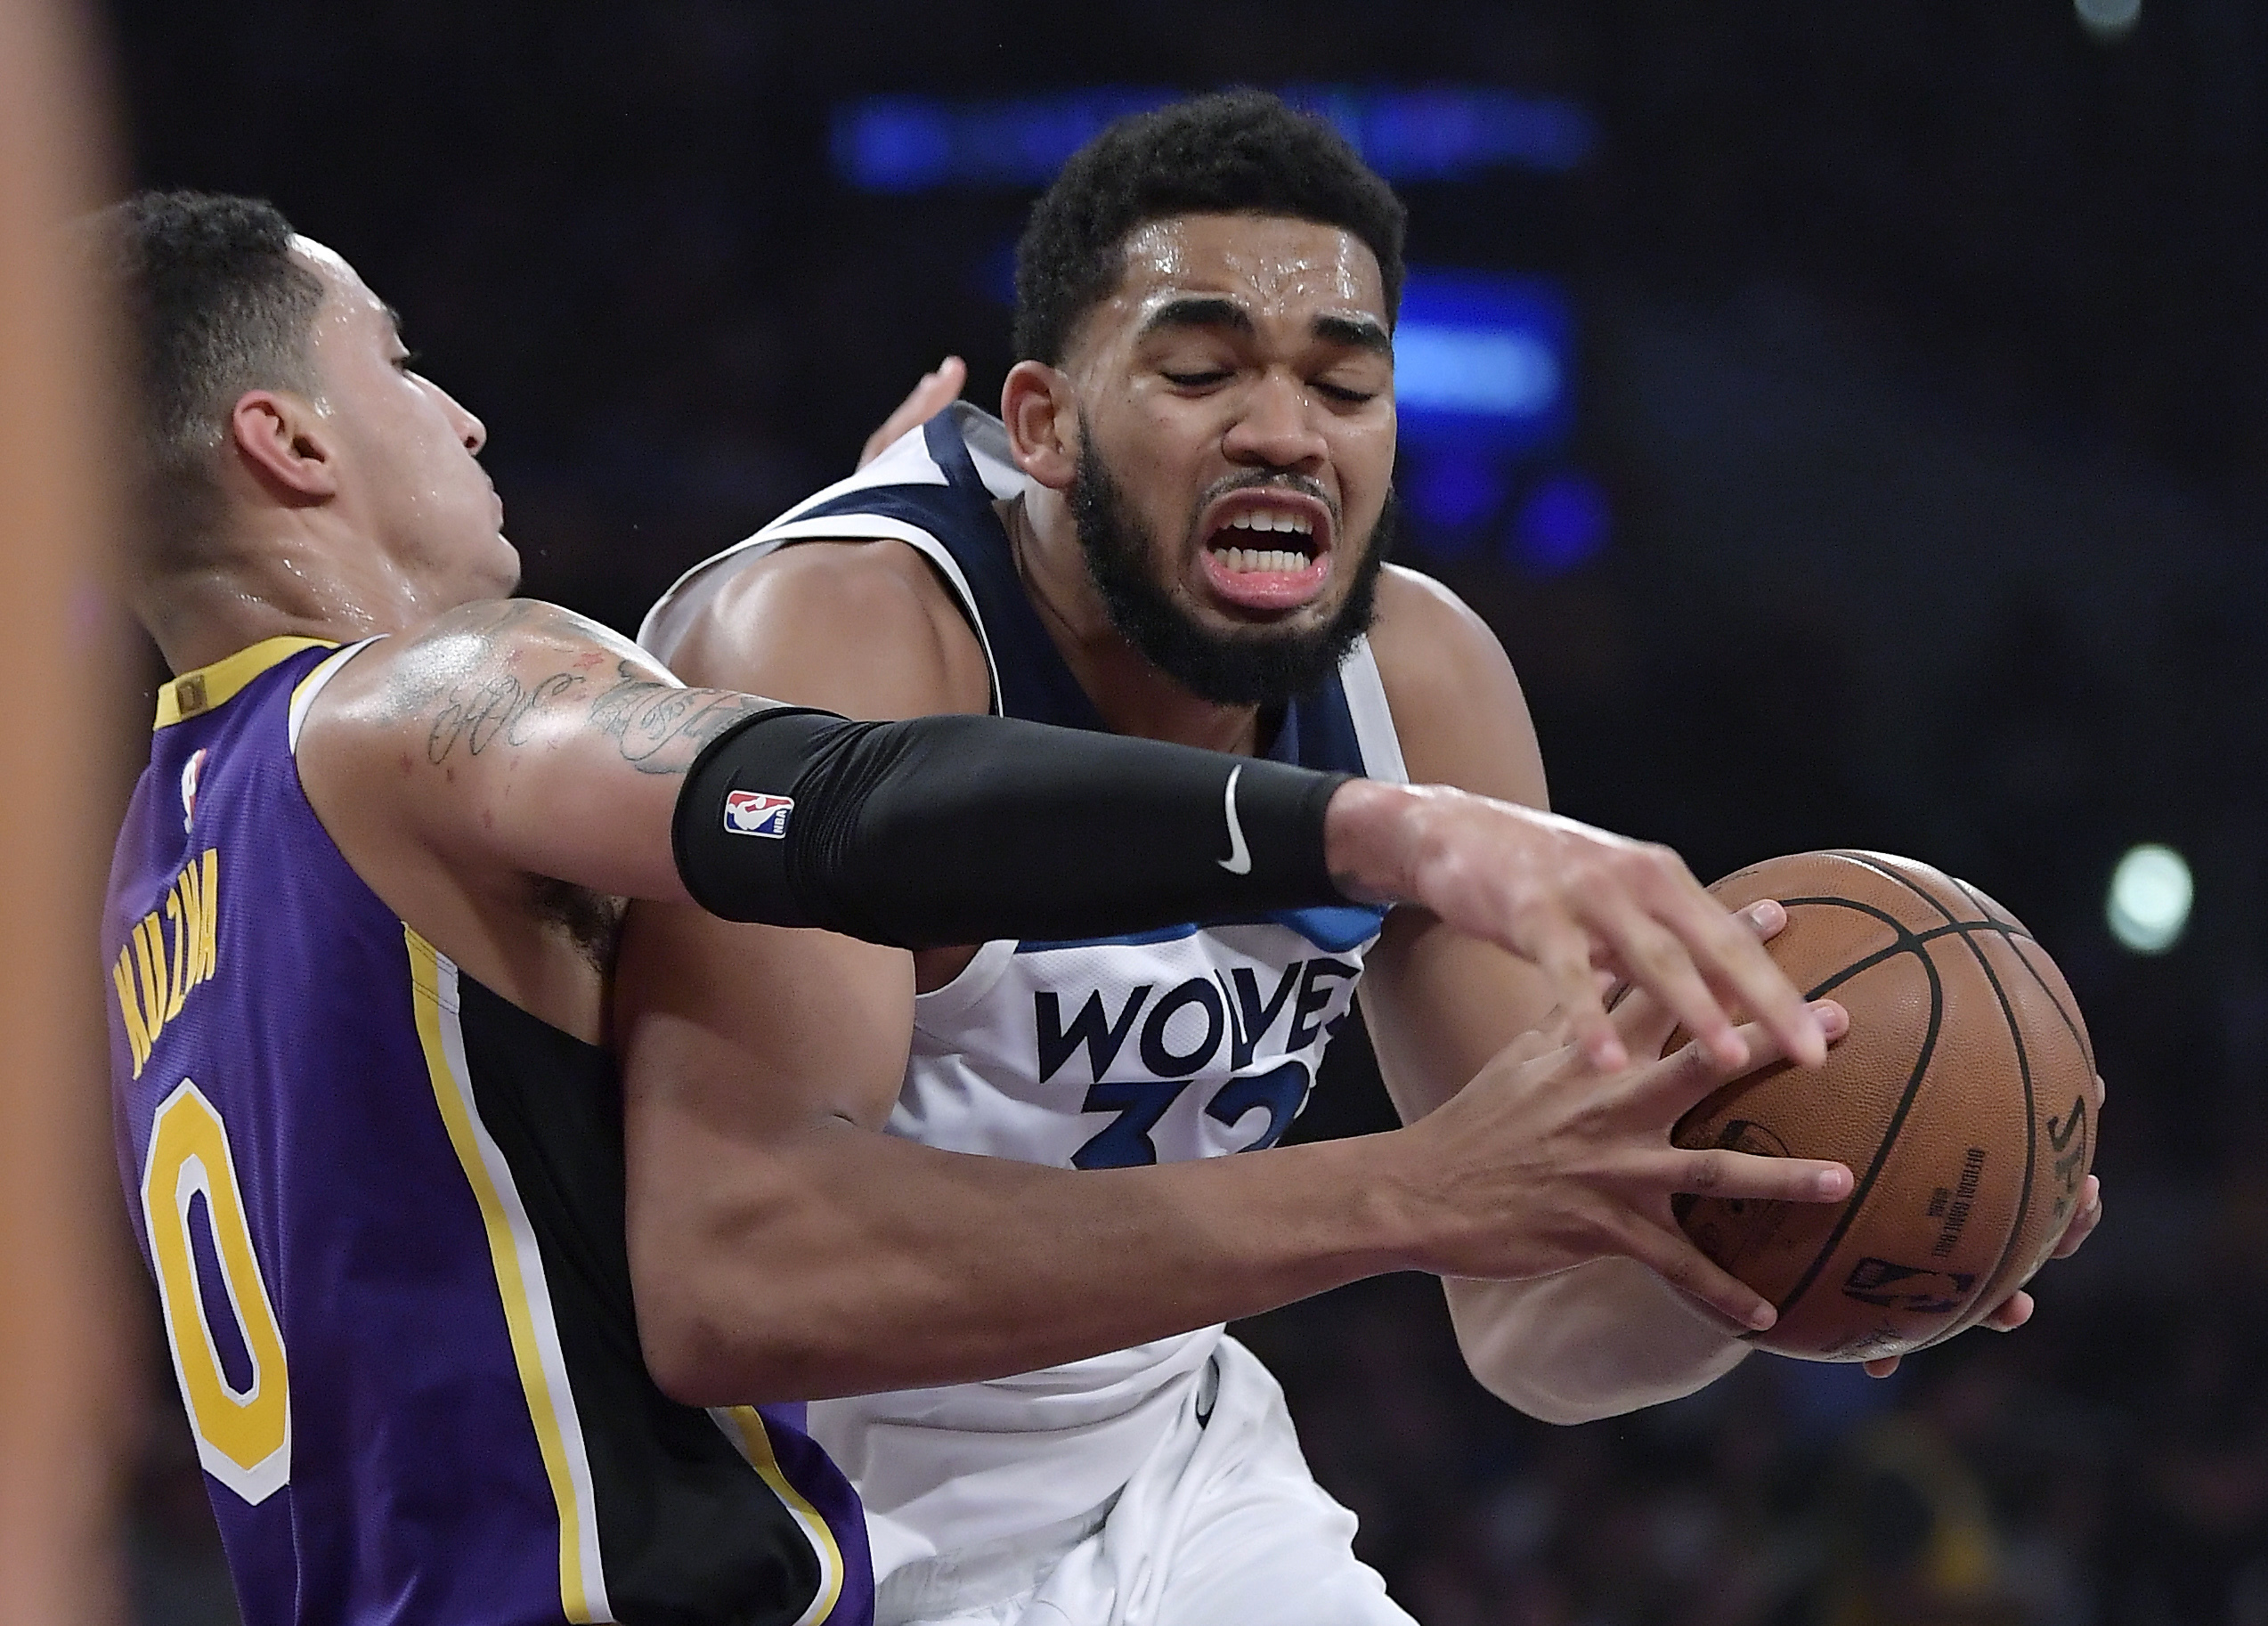 Minnesota Timberwolves center Karl-Anthony Towns, right, tries to get past Los Angeles Lakers forward Kyle Kuzma during the first half of an NBA basketball game Wednesday, Nov. 7, 2018, in Los Angeles. (AP Photo/Mark J. Terrill)